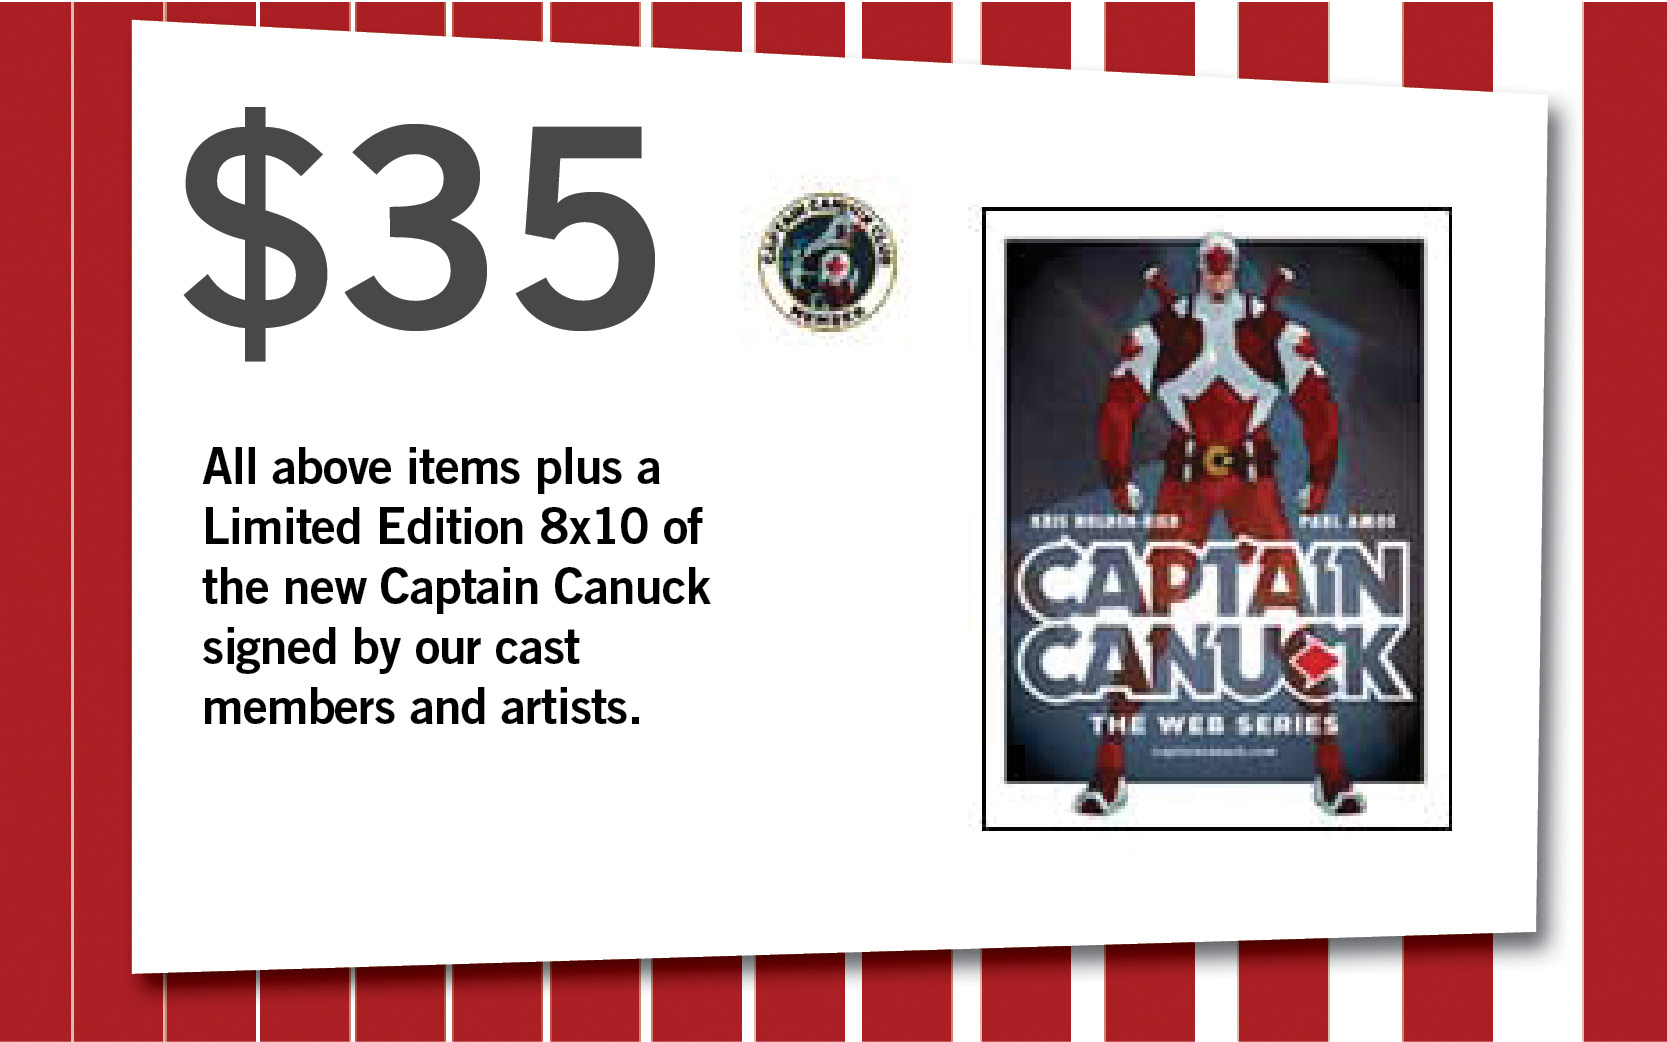 All above items plus a Limited Edition 8x10 of the new Captain Canuck signed by our cast members and artists.